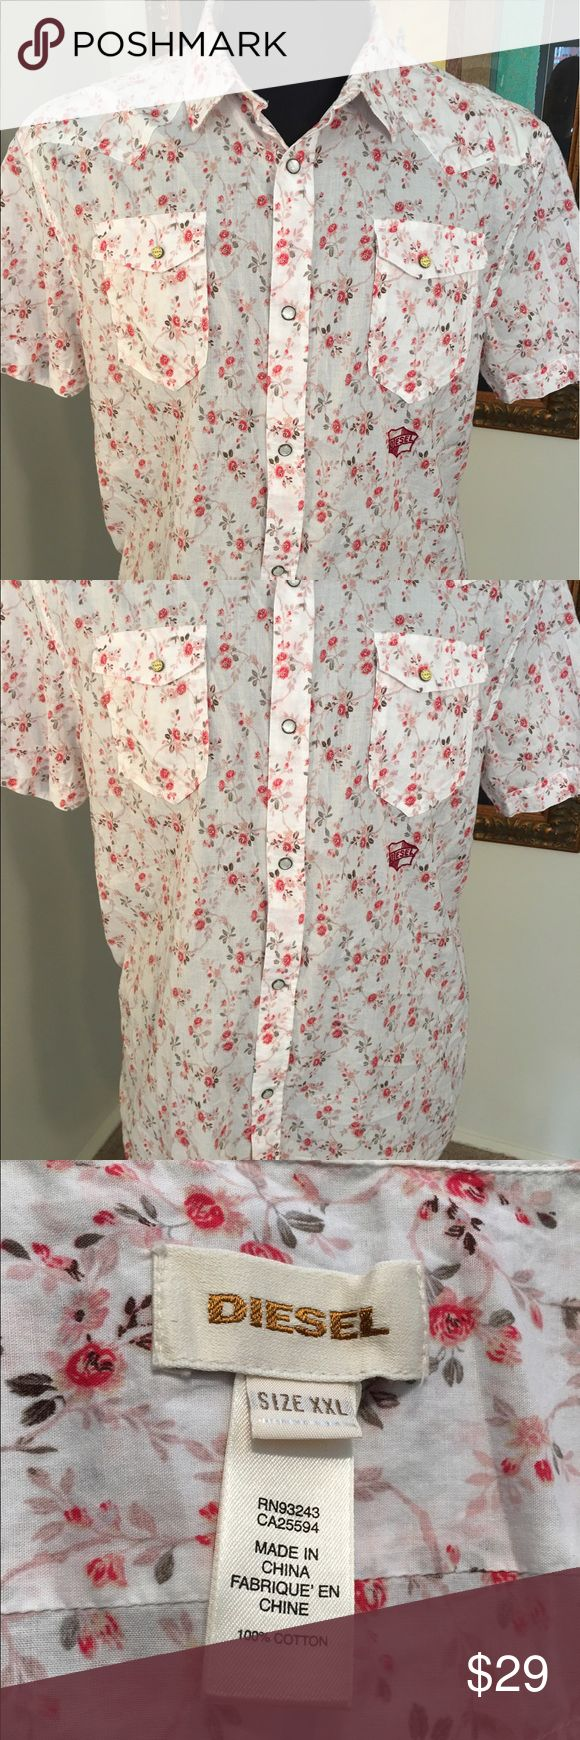 🆕DIESEL NEW MENS BUTTON SHIRT 💯AUTHENTIC DIESEL MENS SHORT SLEEVE FLORAL BUTTON UP SHIRT. PURCHASED BUT NEVER WORE IT. WHAT A GREAT SHIRT FOR THE FASHIONABLE MAN. TRUE HIGH END LUXURY WITH THIS LIGHTWEIGHT FABRIC. IT IS A FITTED XXL Diesel Shirts Casual Button Down Shirts